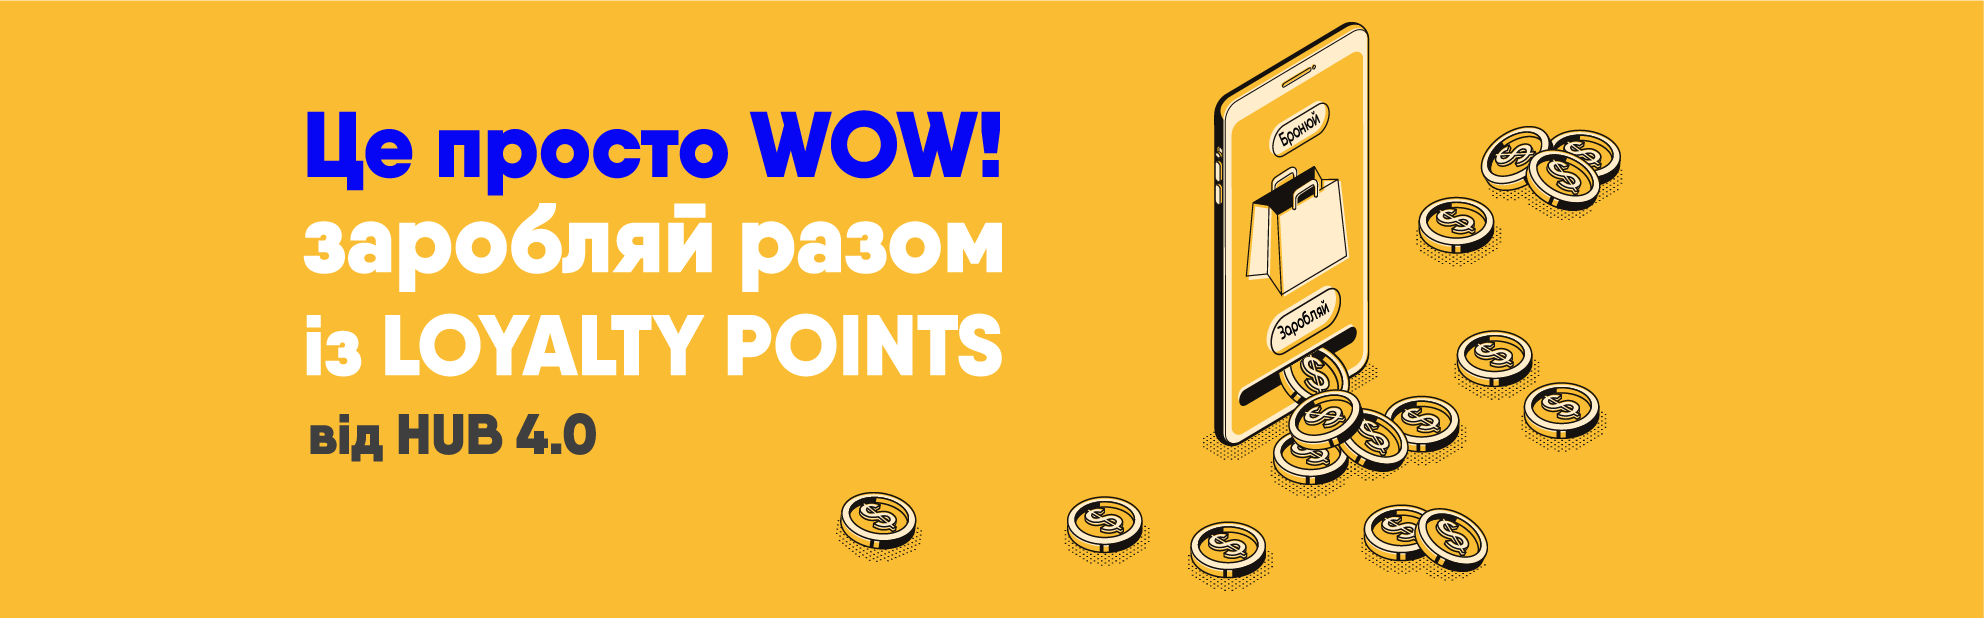 Loyalty points від HUB 4.0